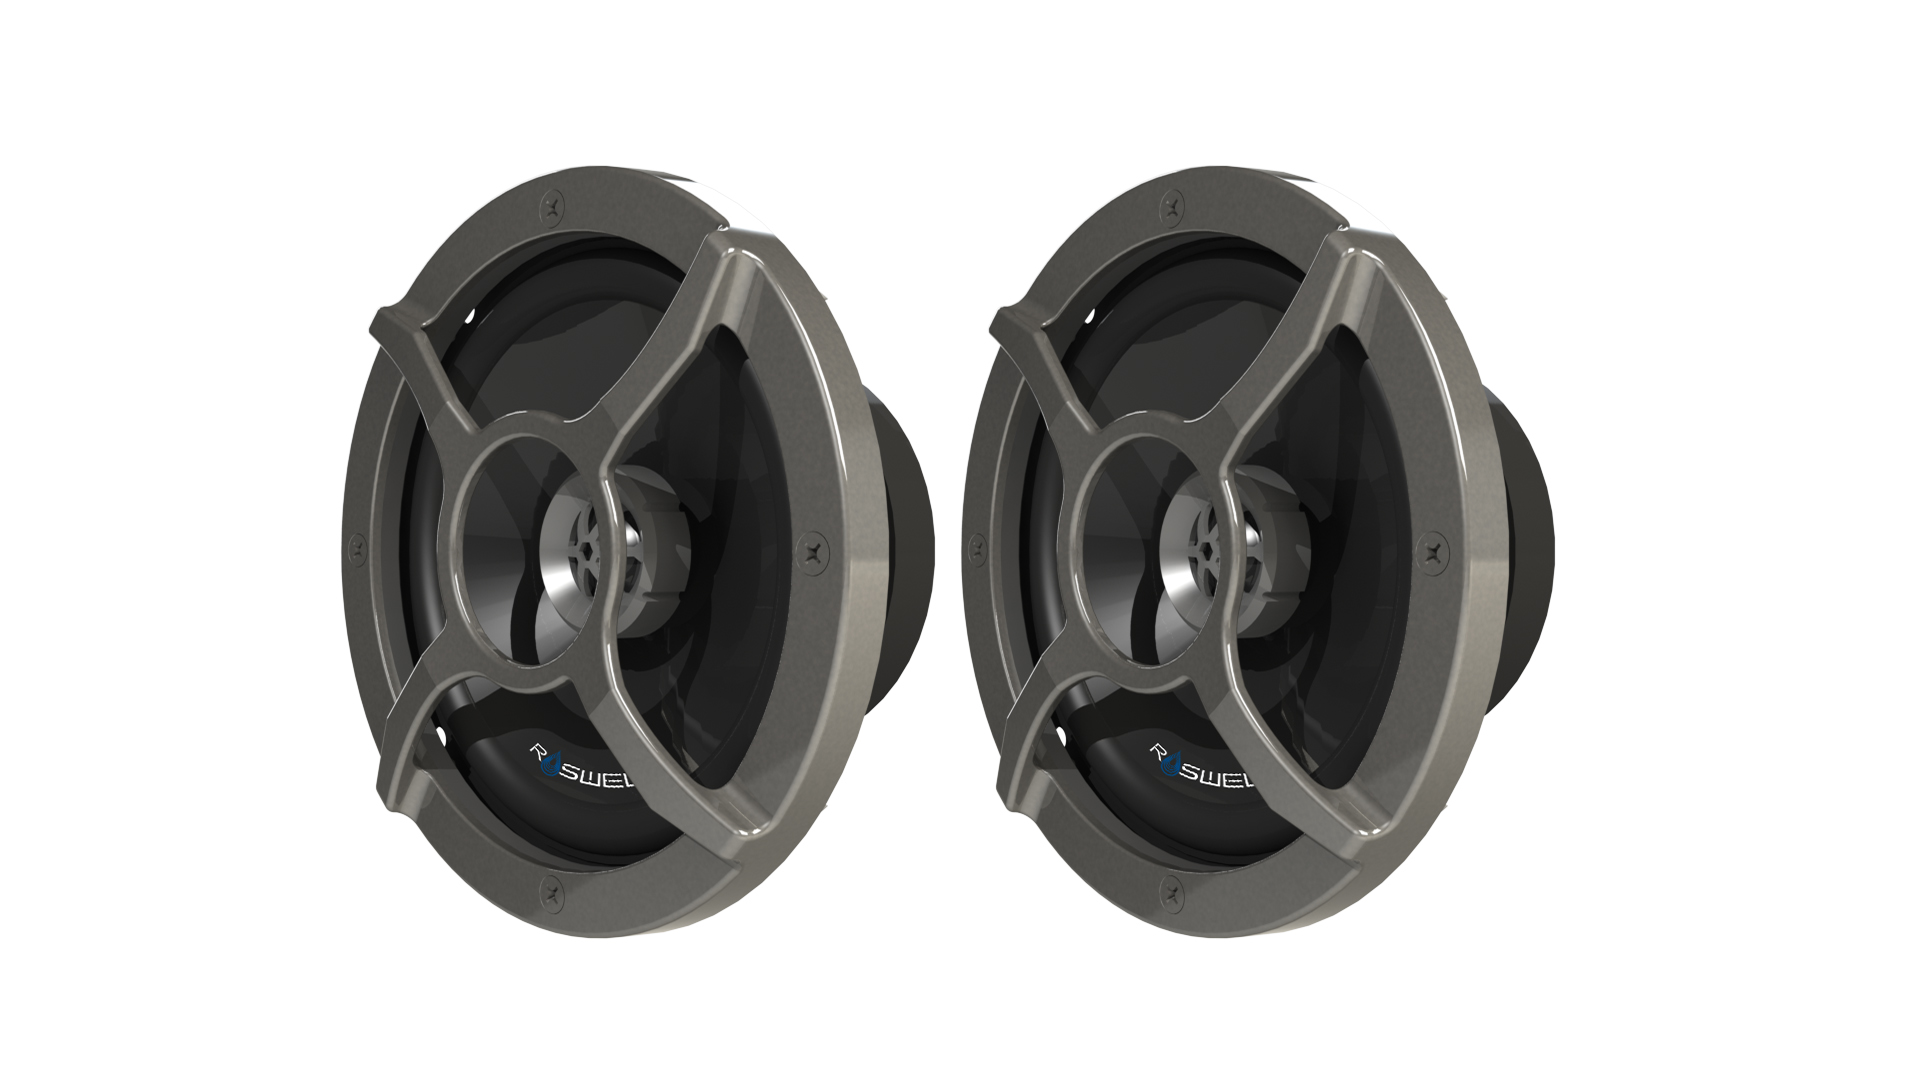 MARINE AUDIO 6510 SS IN-BOAT SPEAKERS ROSWELL 2018